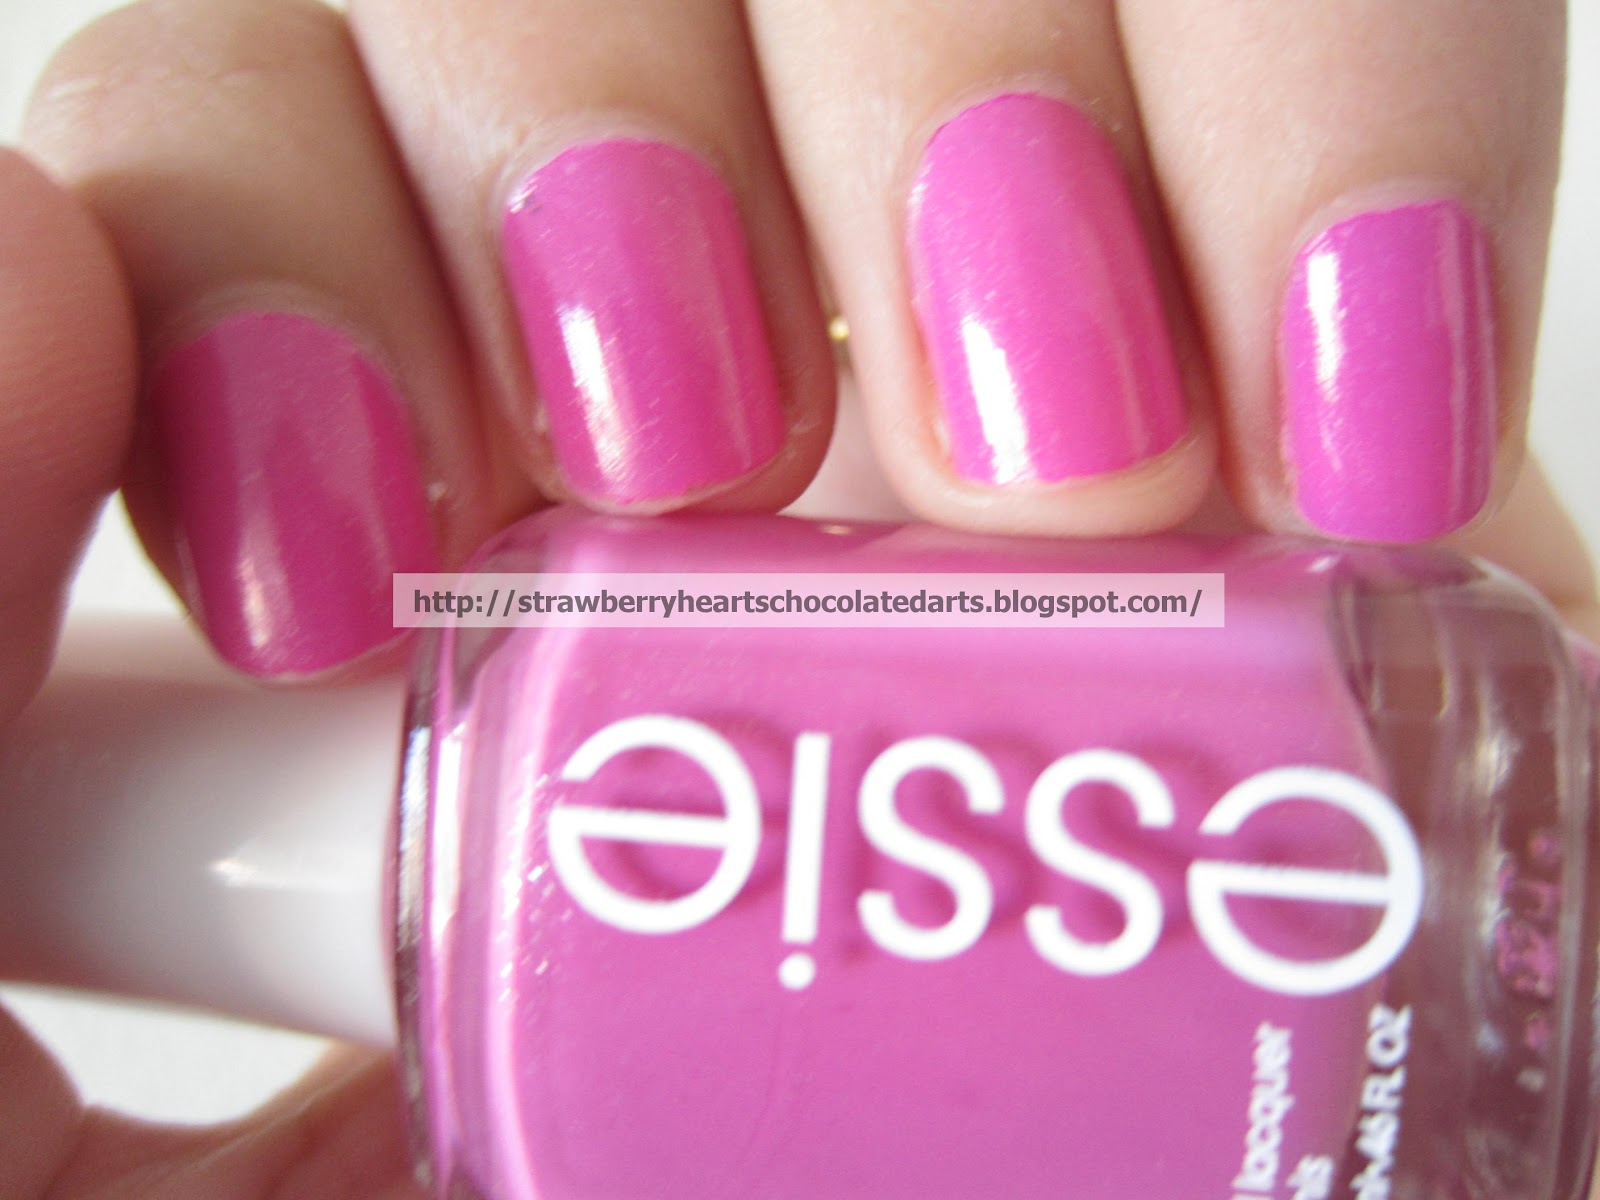 Strawberry Hearts Chocolate Darts Essie Nail Polish In Madison Ave Hue Essie Spring 2013